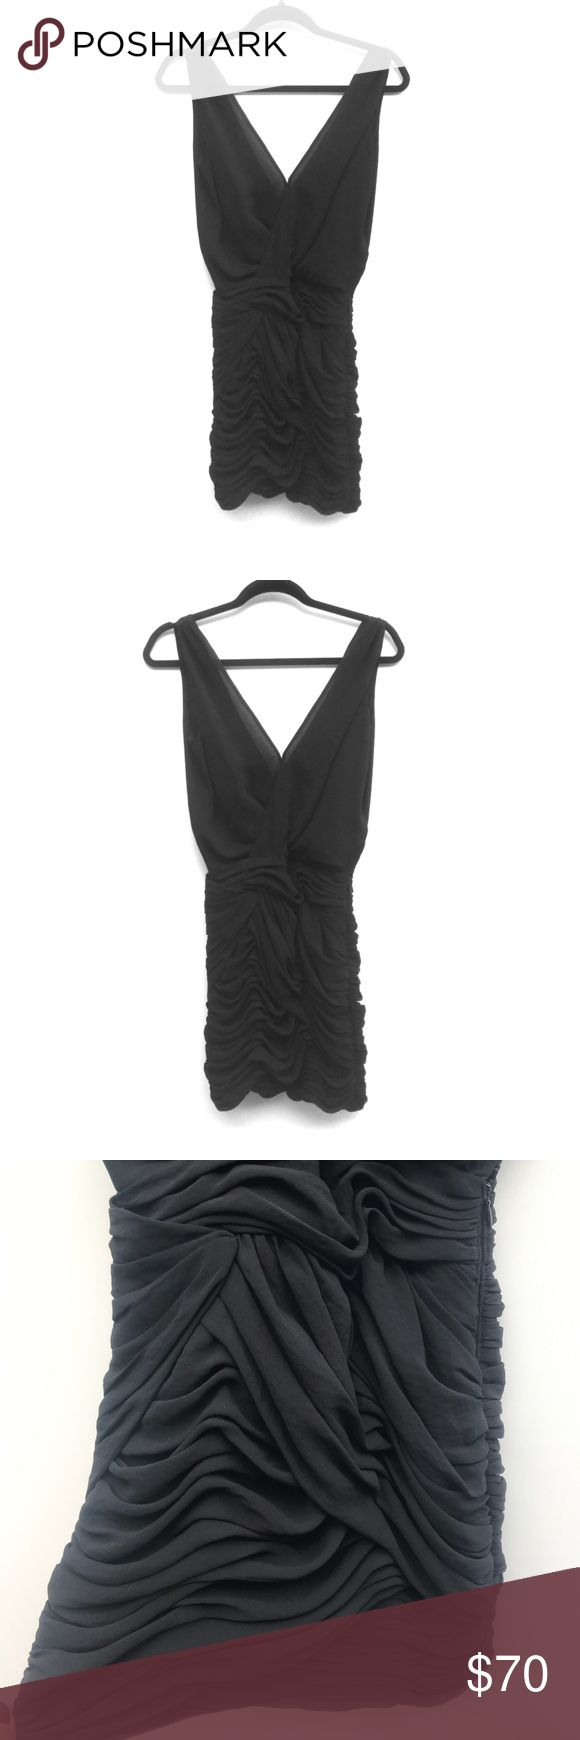 Armani Exchange Little Black Cocktail Dress💜 Sz 0 Armani Exchange Little Black Cocktail Dress💜 Sz 0- Mini Dress above knee. Scrunched bottom. fabulous condition! Perfect with heels &accessories. 100% polyester. A/X Armani Exchange Dresses Mini